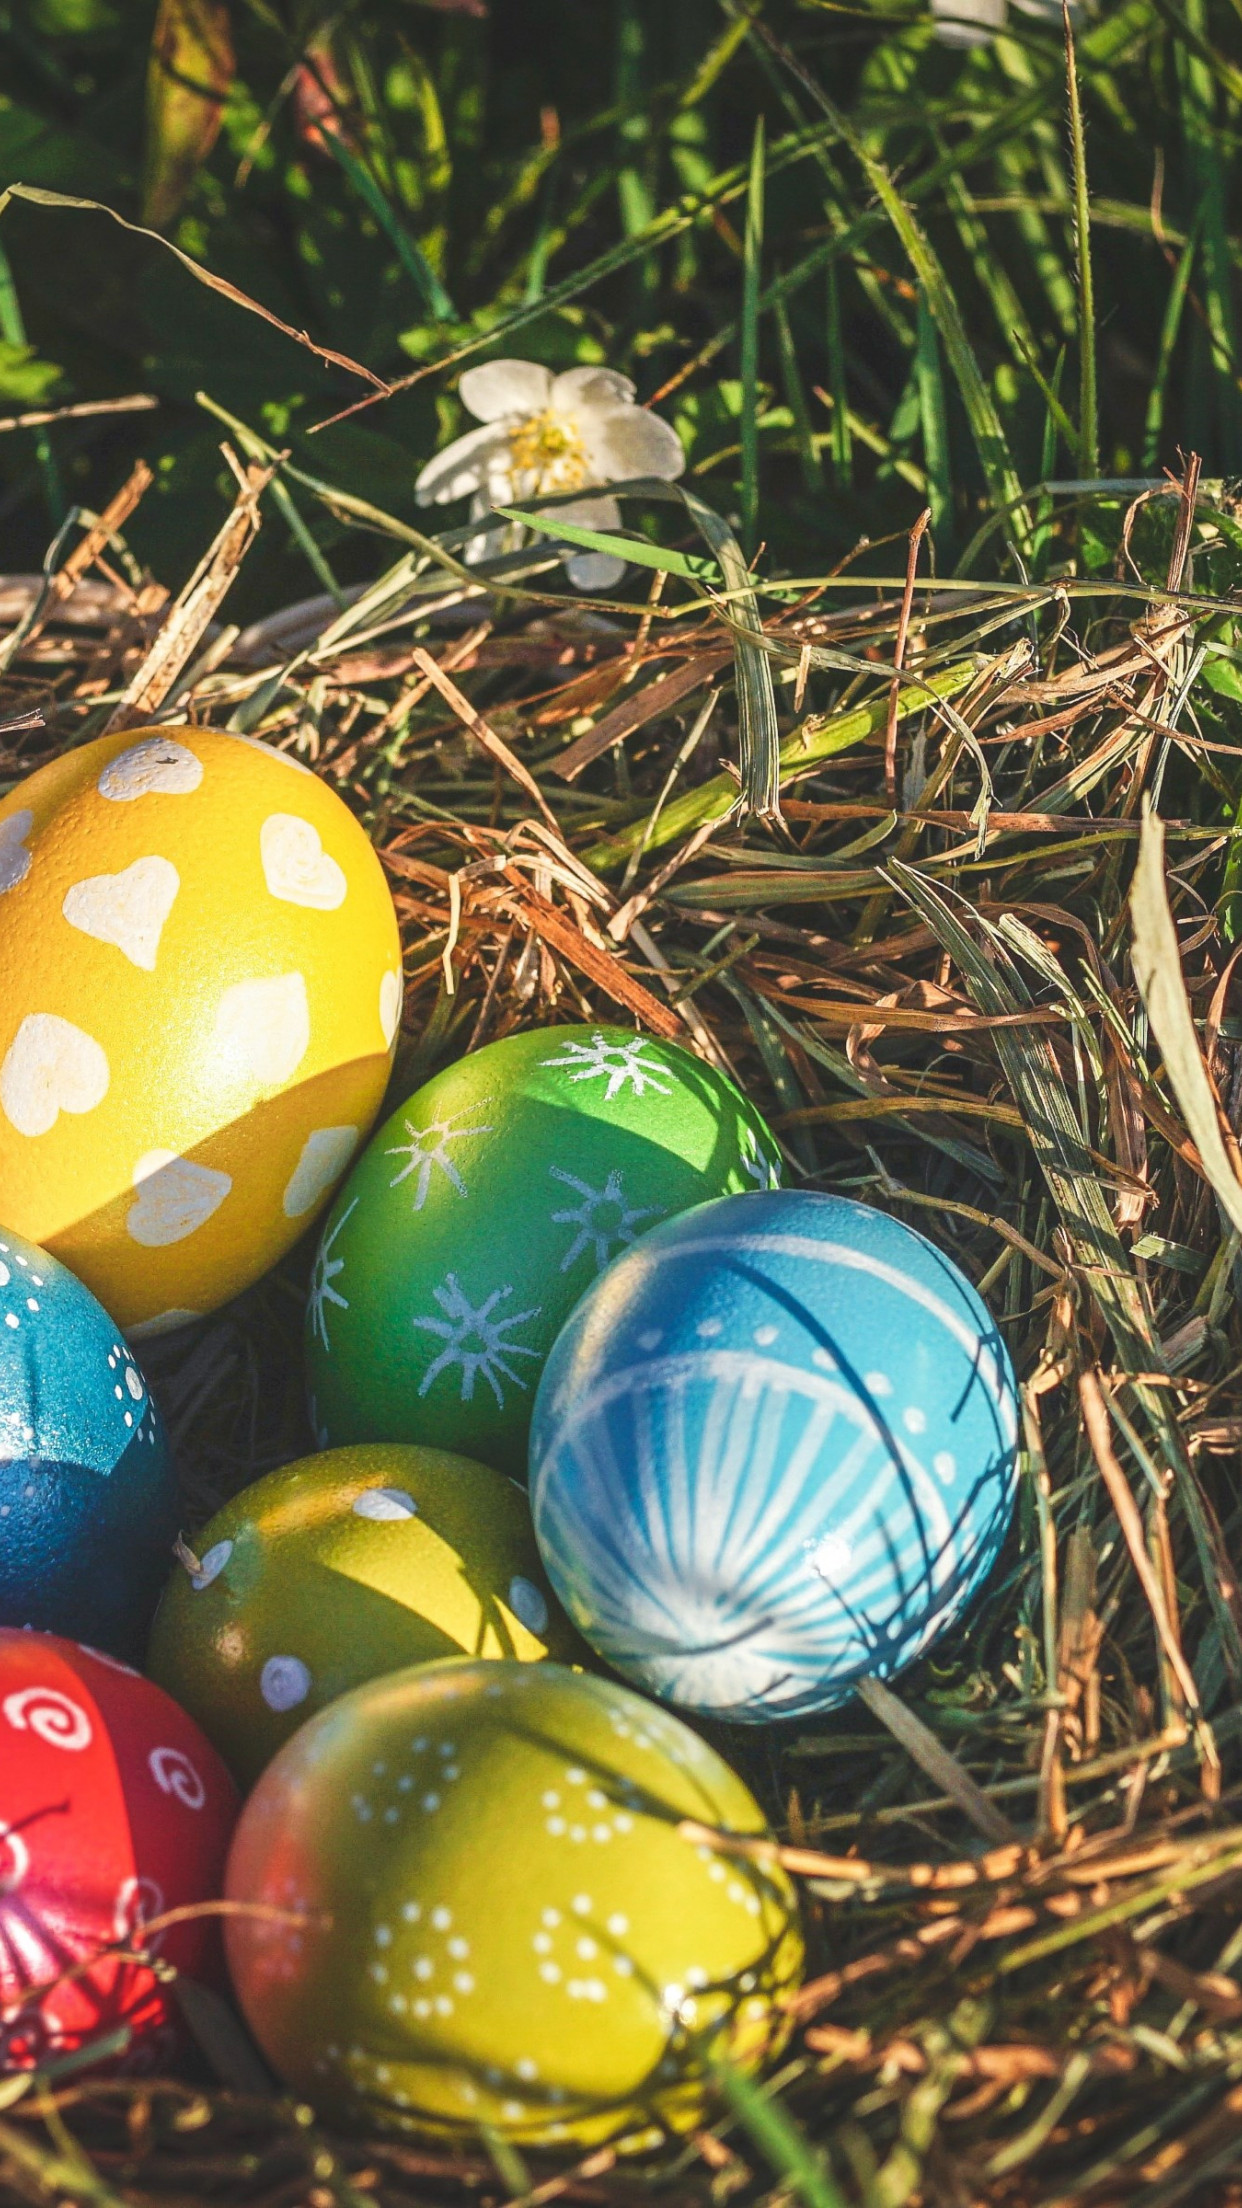 Easter eggs 2019 wallpaper 1242x2208